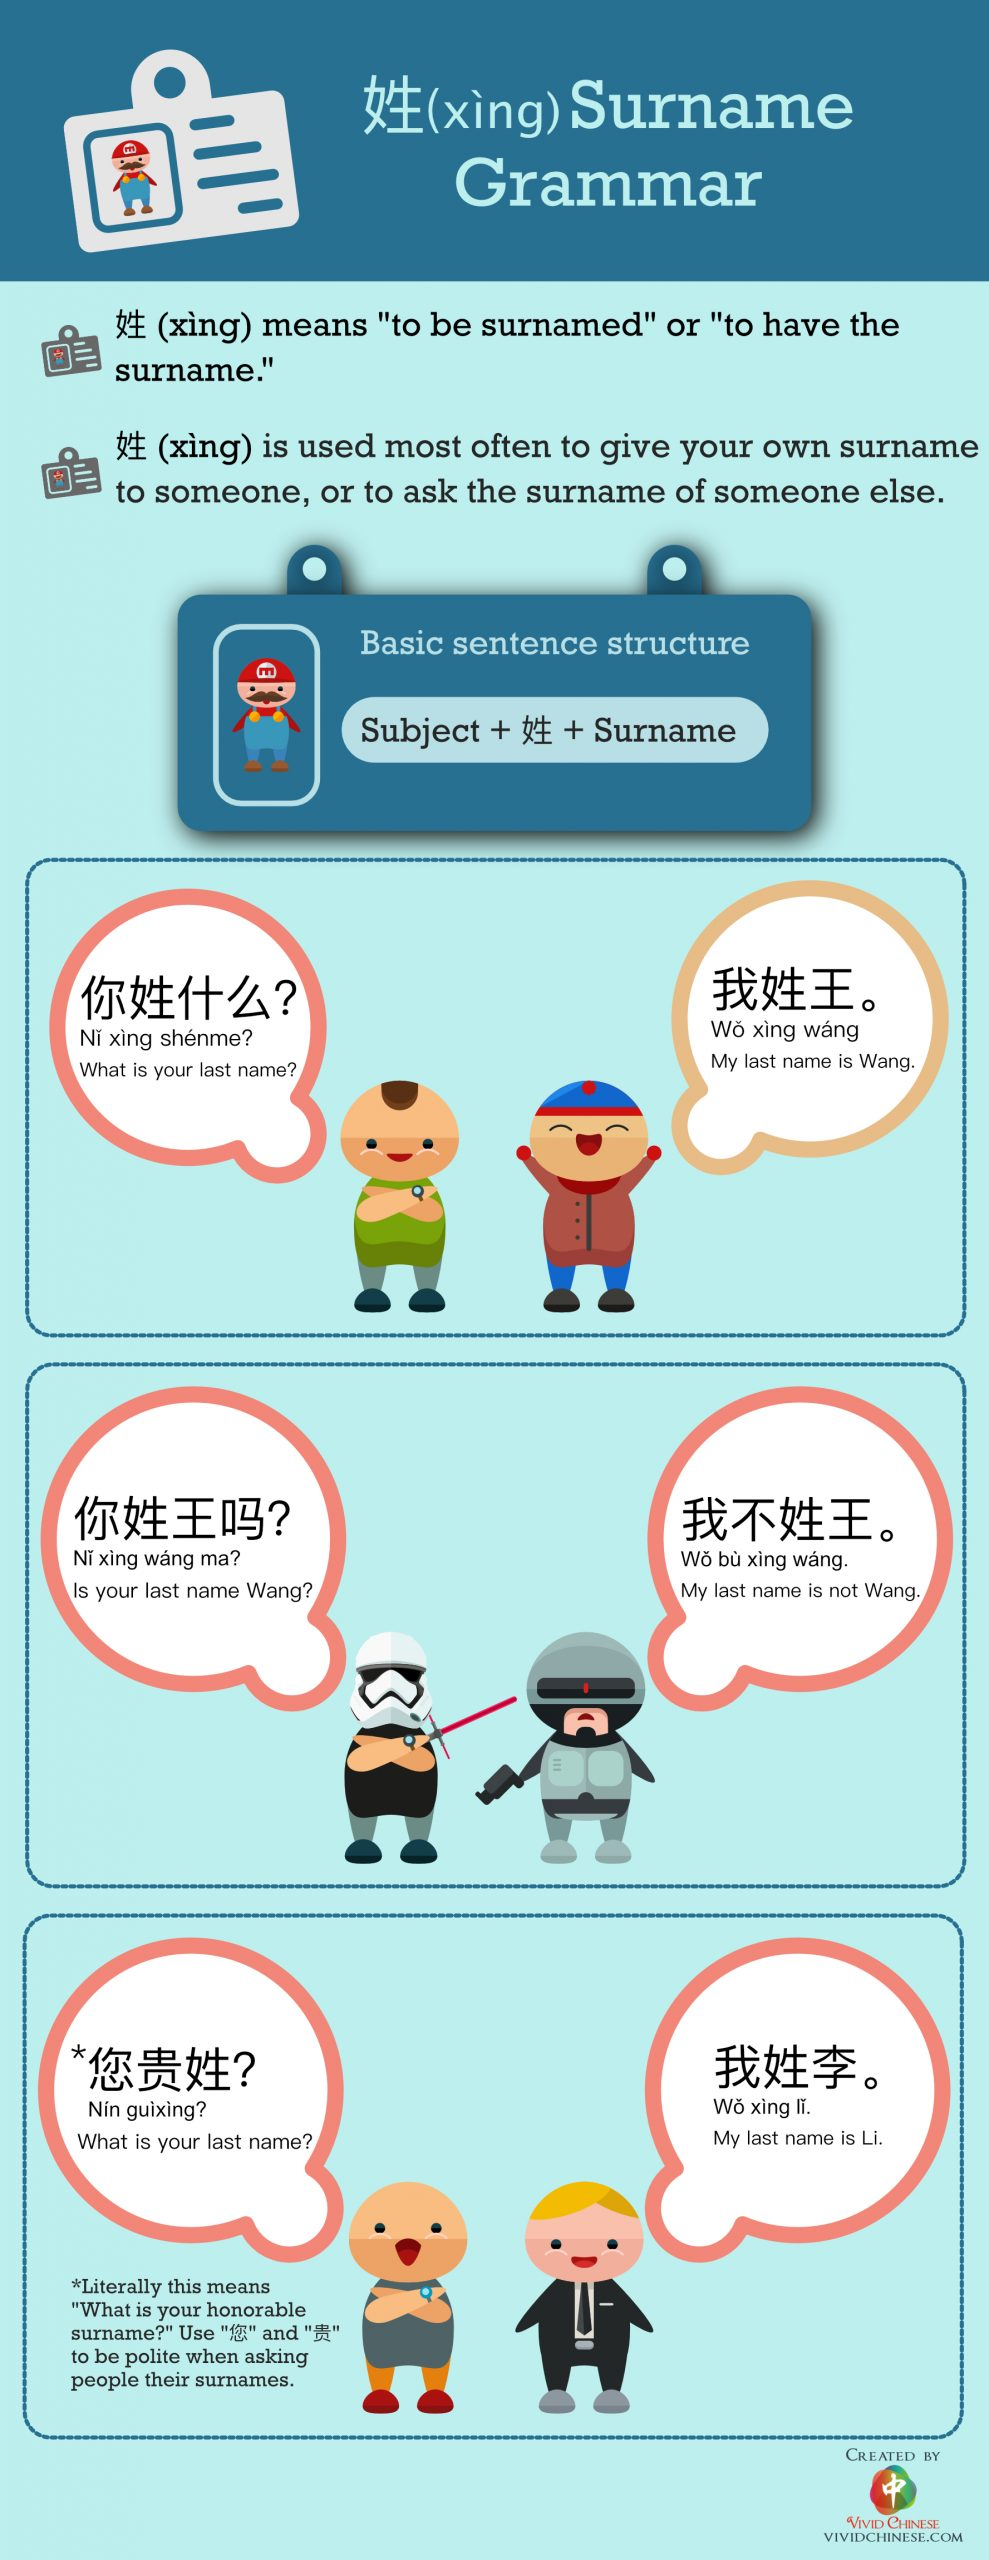 Surname in Chinese Simplified Chinese Version Infographic